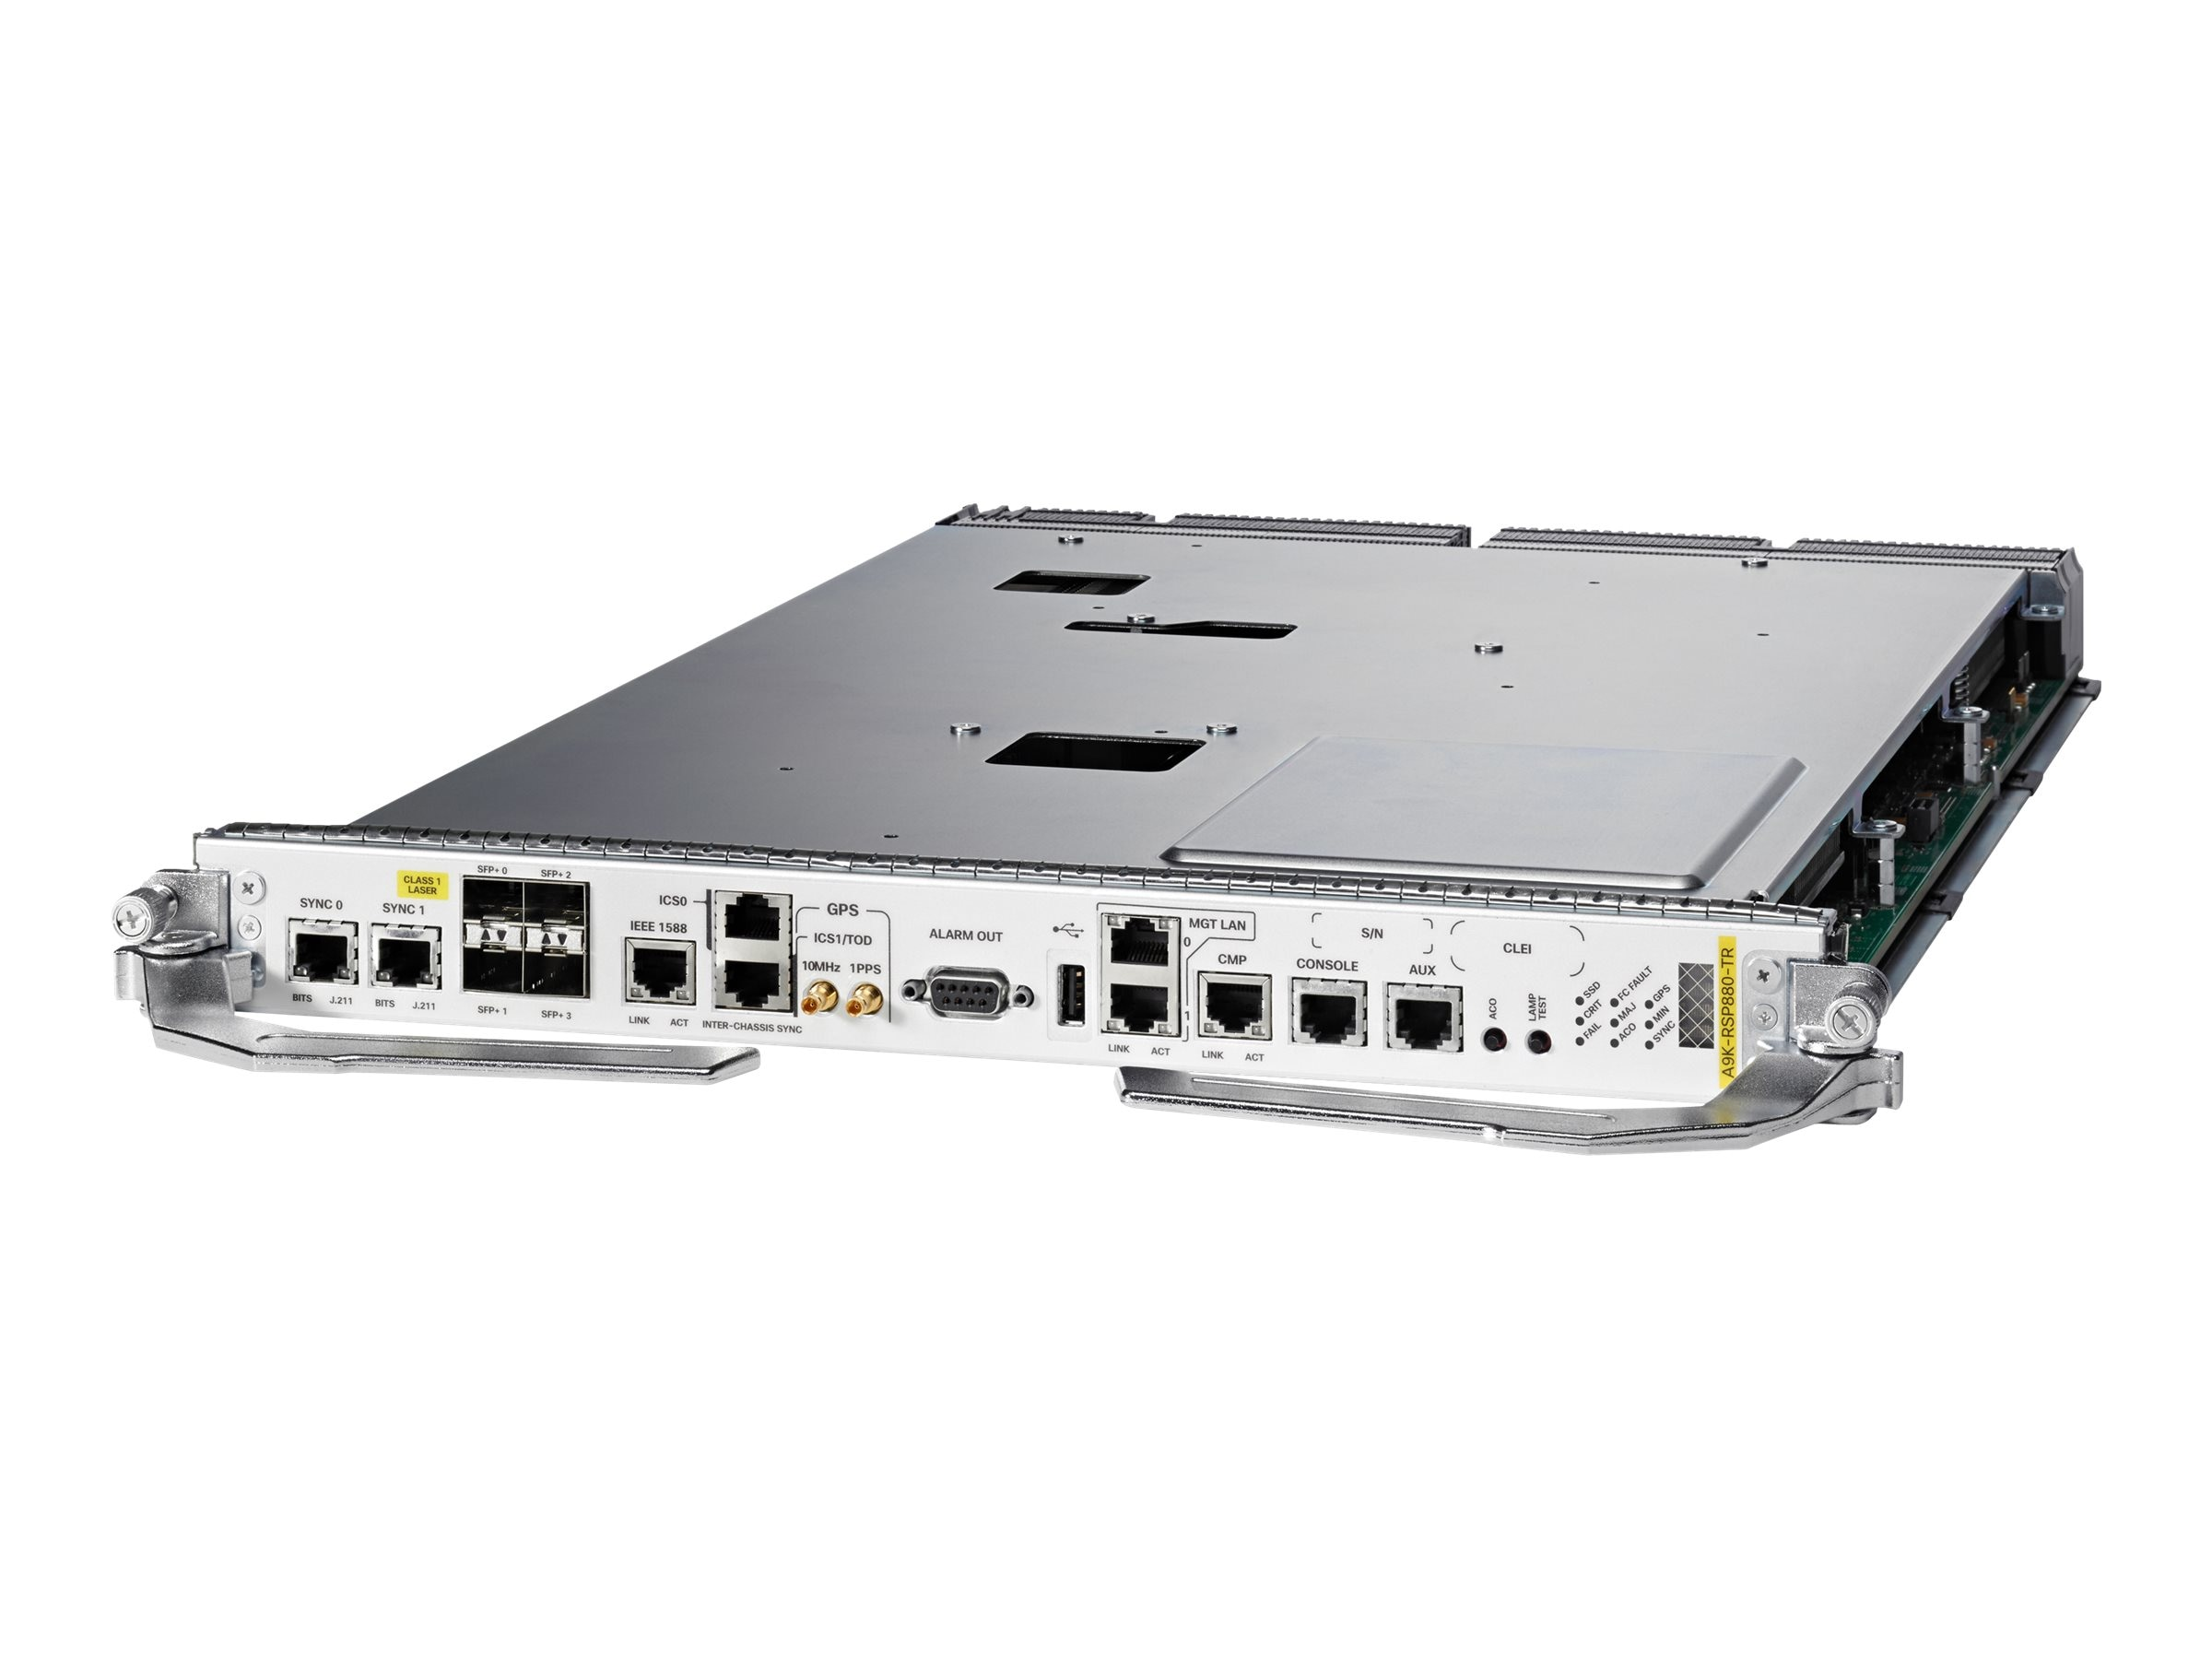 Cisco A9K-RSP880-SE Image 1